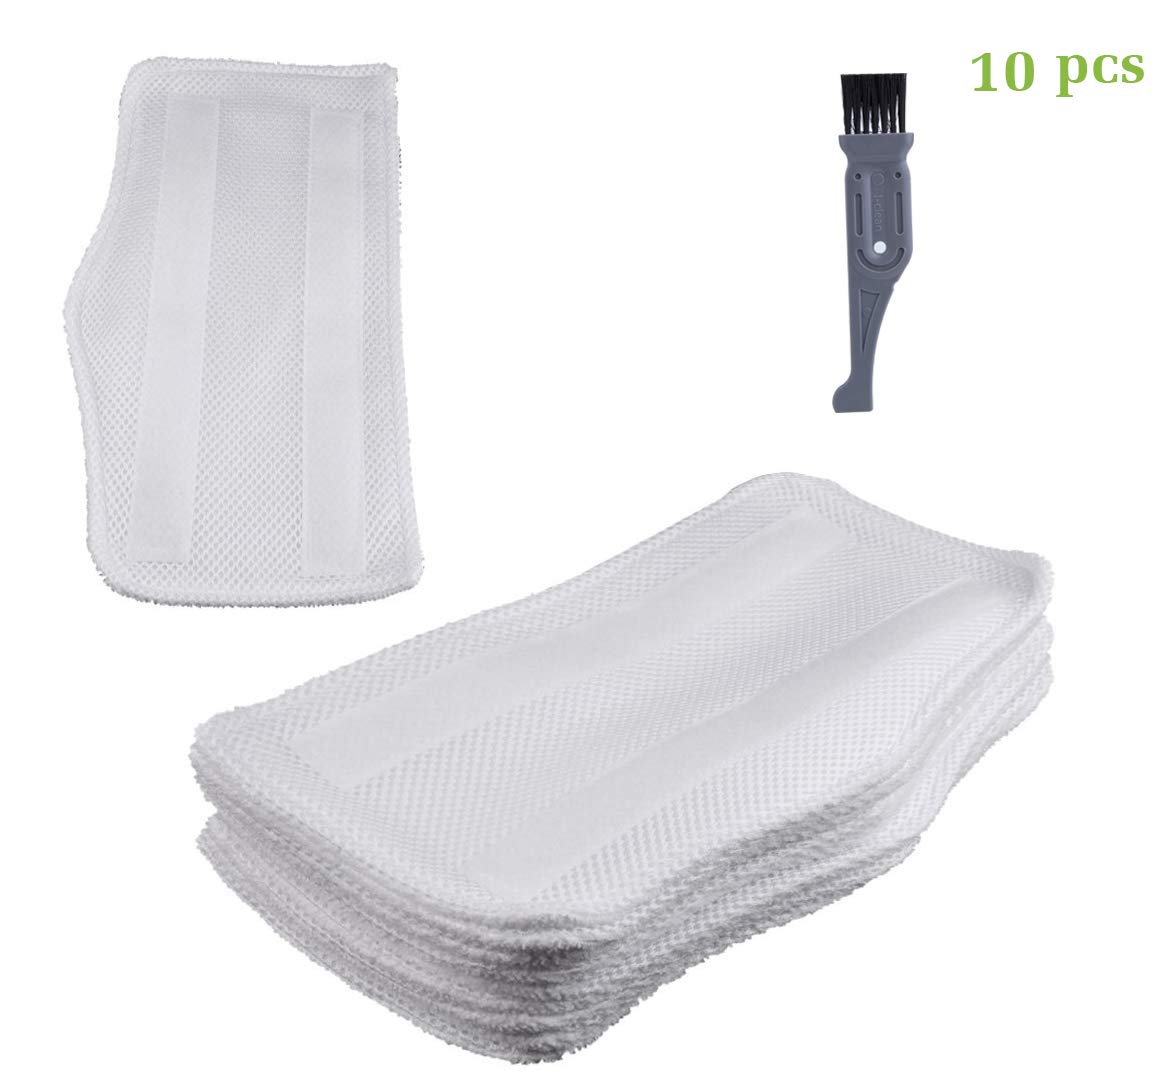 I-clean 10PCS Shark S3101 Steam Mop Pads, Replacement Washable Microfiber Pads for S3101 S3202 S3250 S3251,With A Free Cleaner Brush